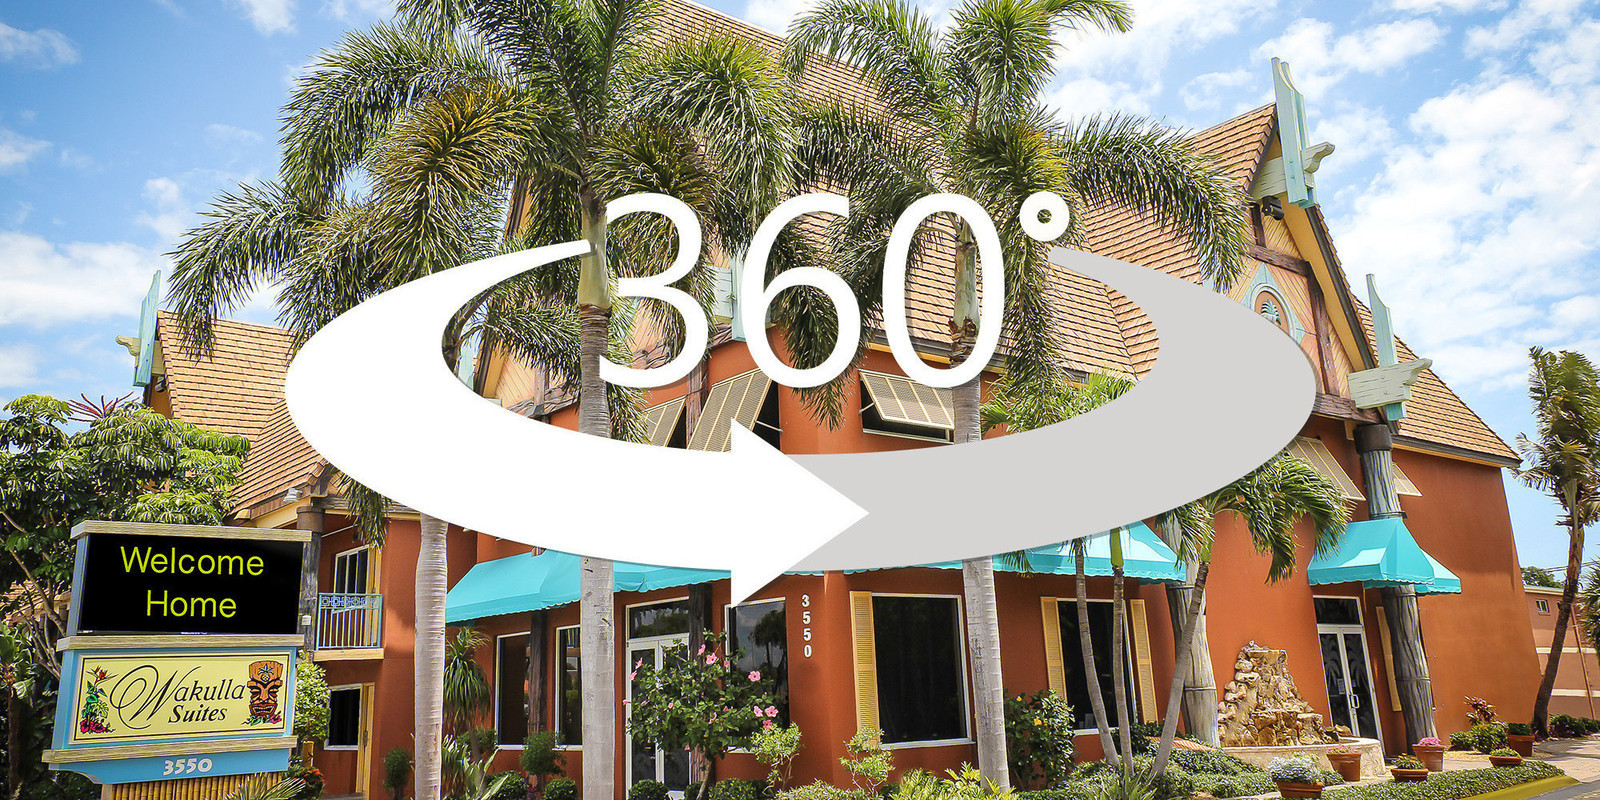 360 degree virtual tour through the Two Bedroom Deluxe Villa   Wakulla  Suites A. Wakulla Suites A Westgate Resort in Cocoa Beach Florida   Westgate